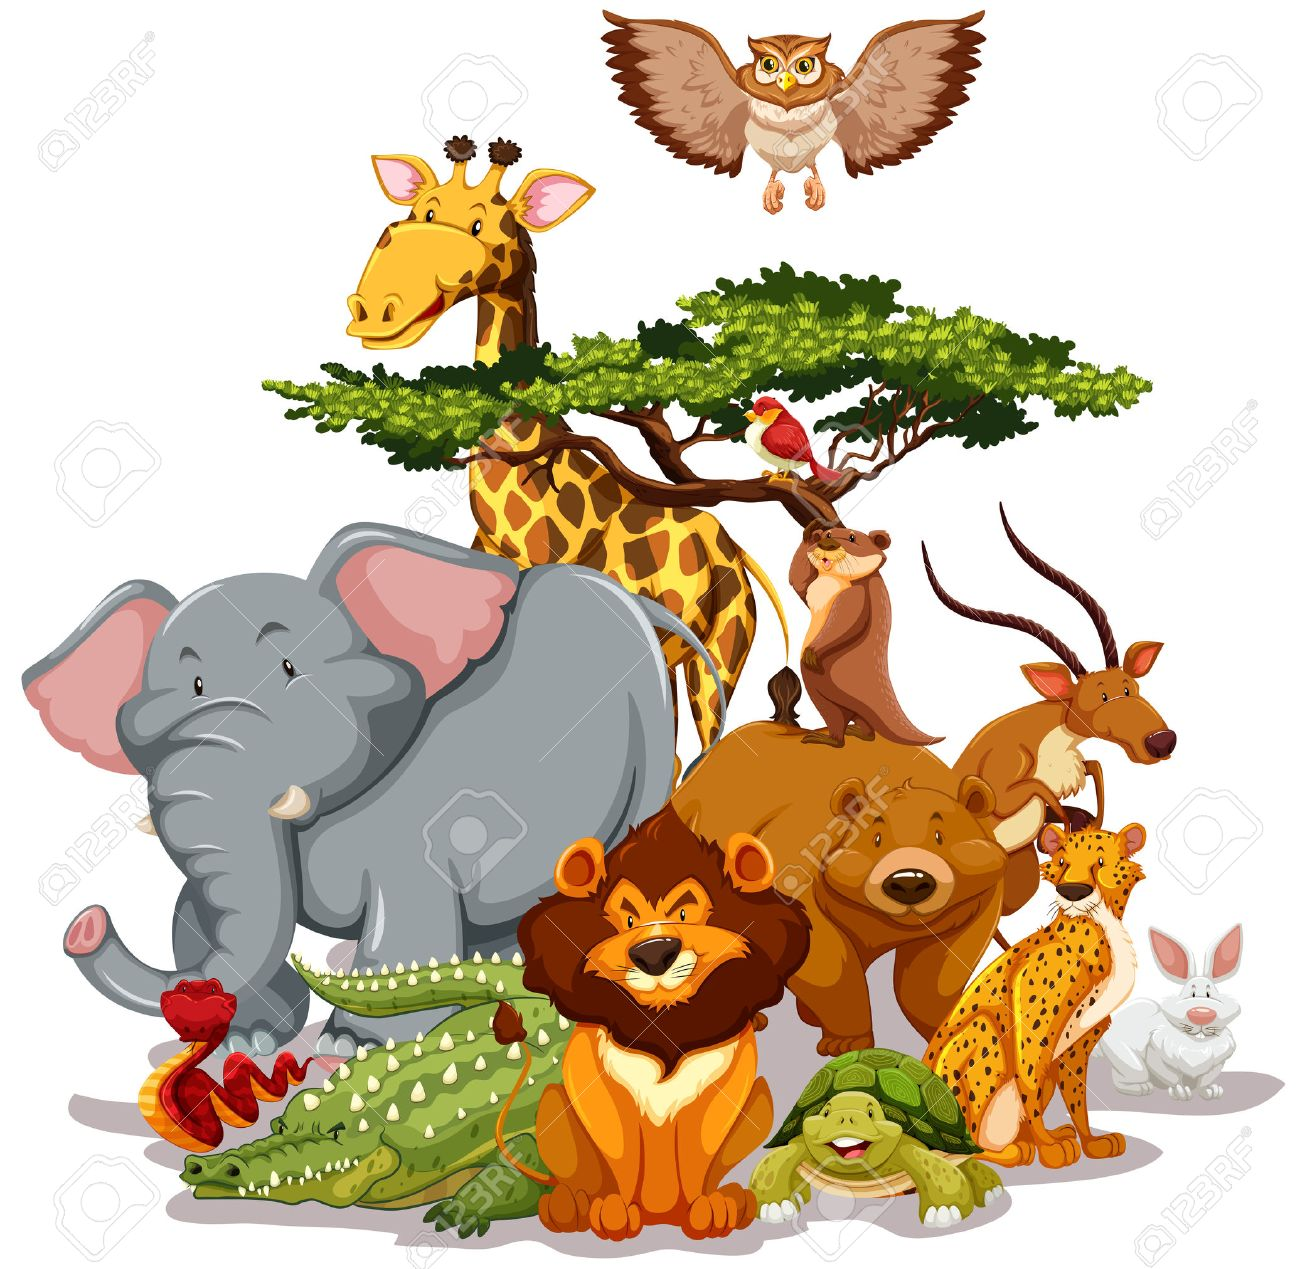 Group of wild animals gathering near a tree.